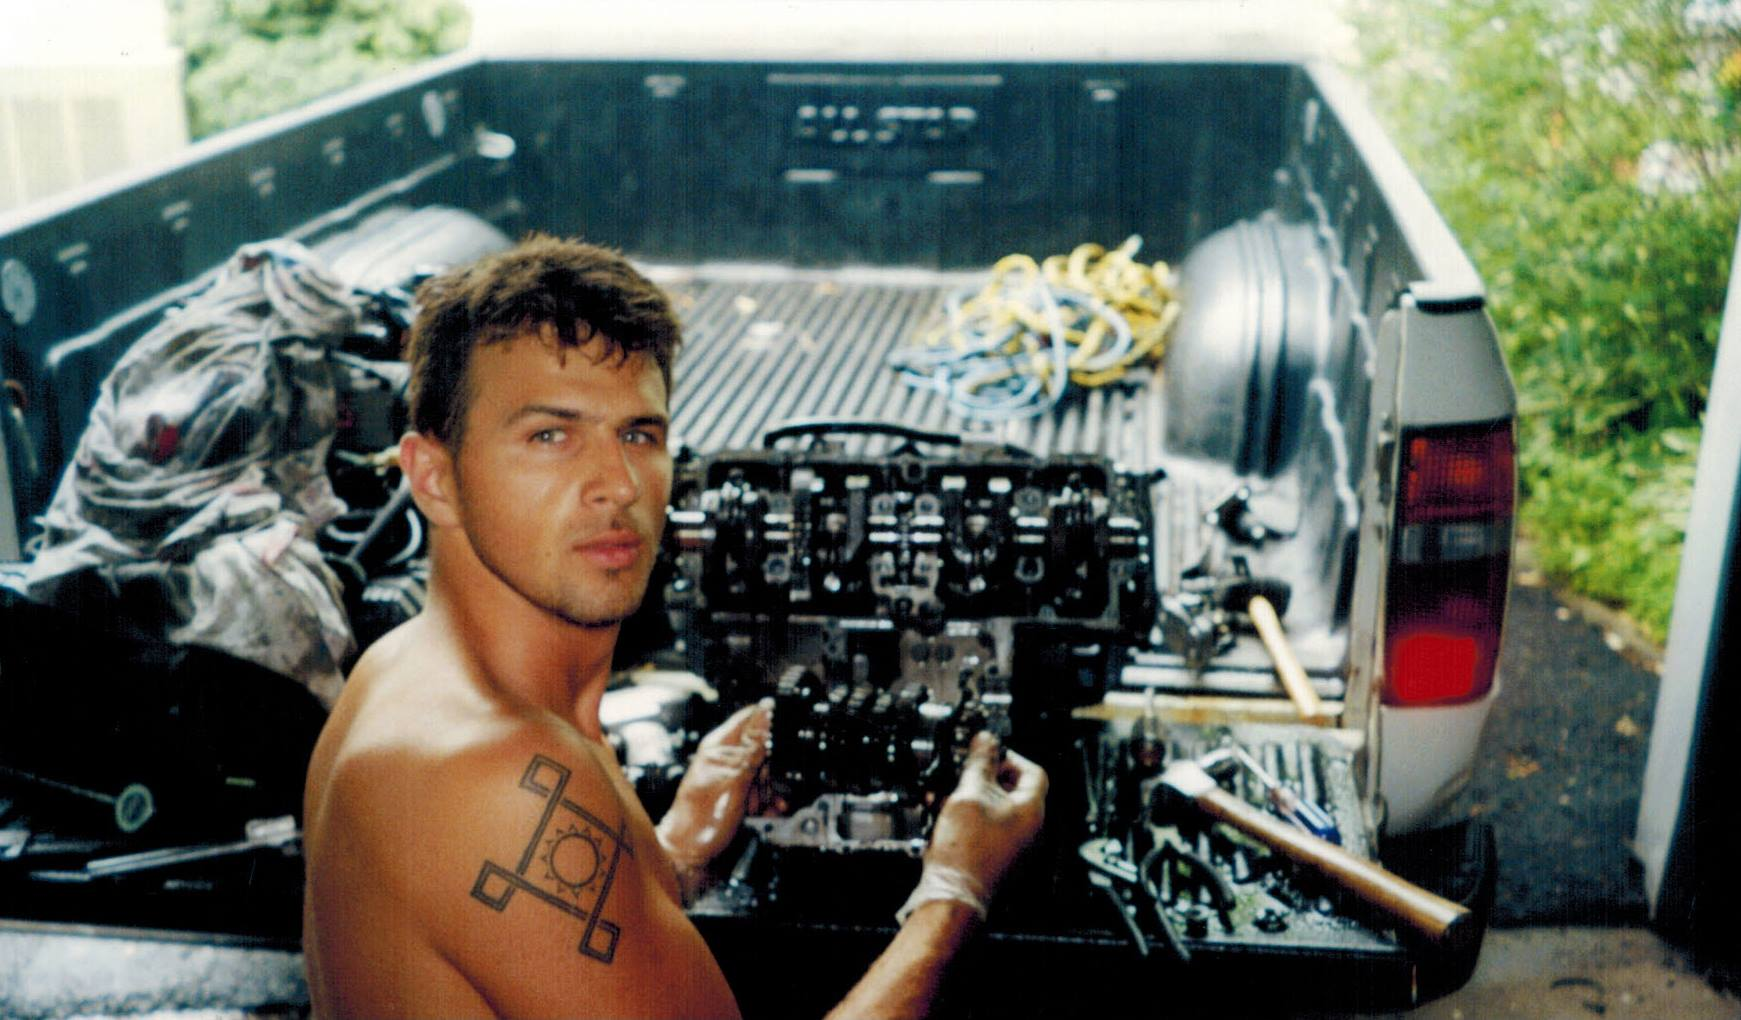 Founder of TST Industries, Bart Rogowski, working on a motorcycle engine when he was young.